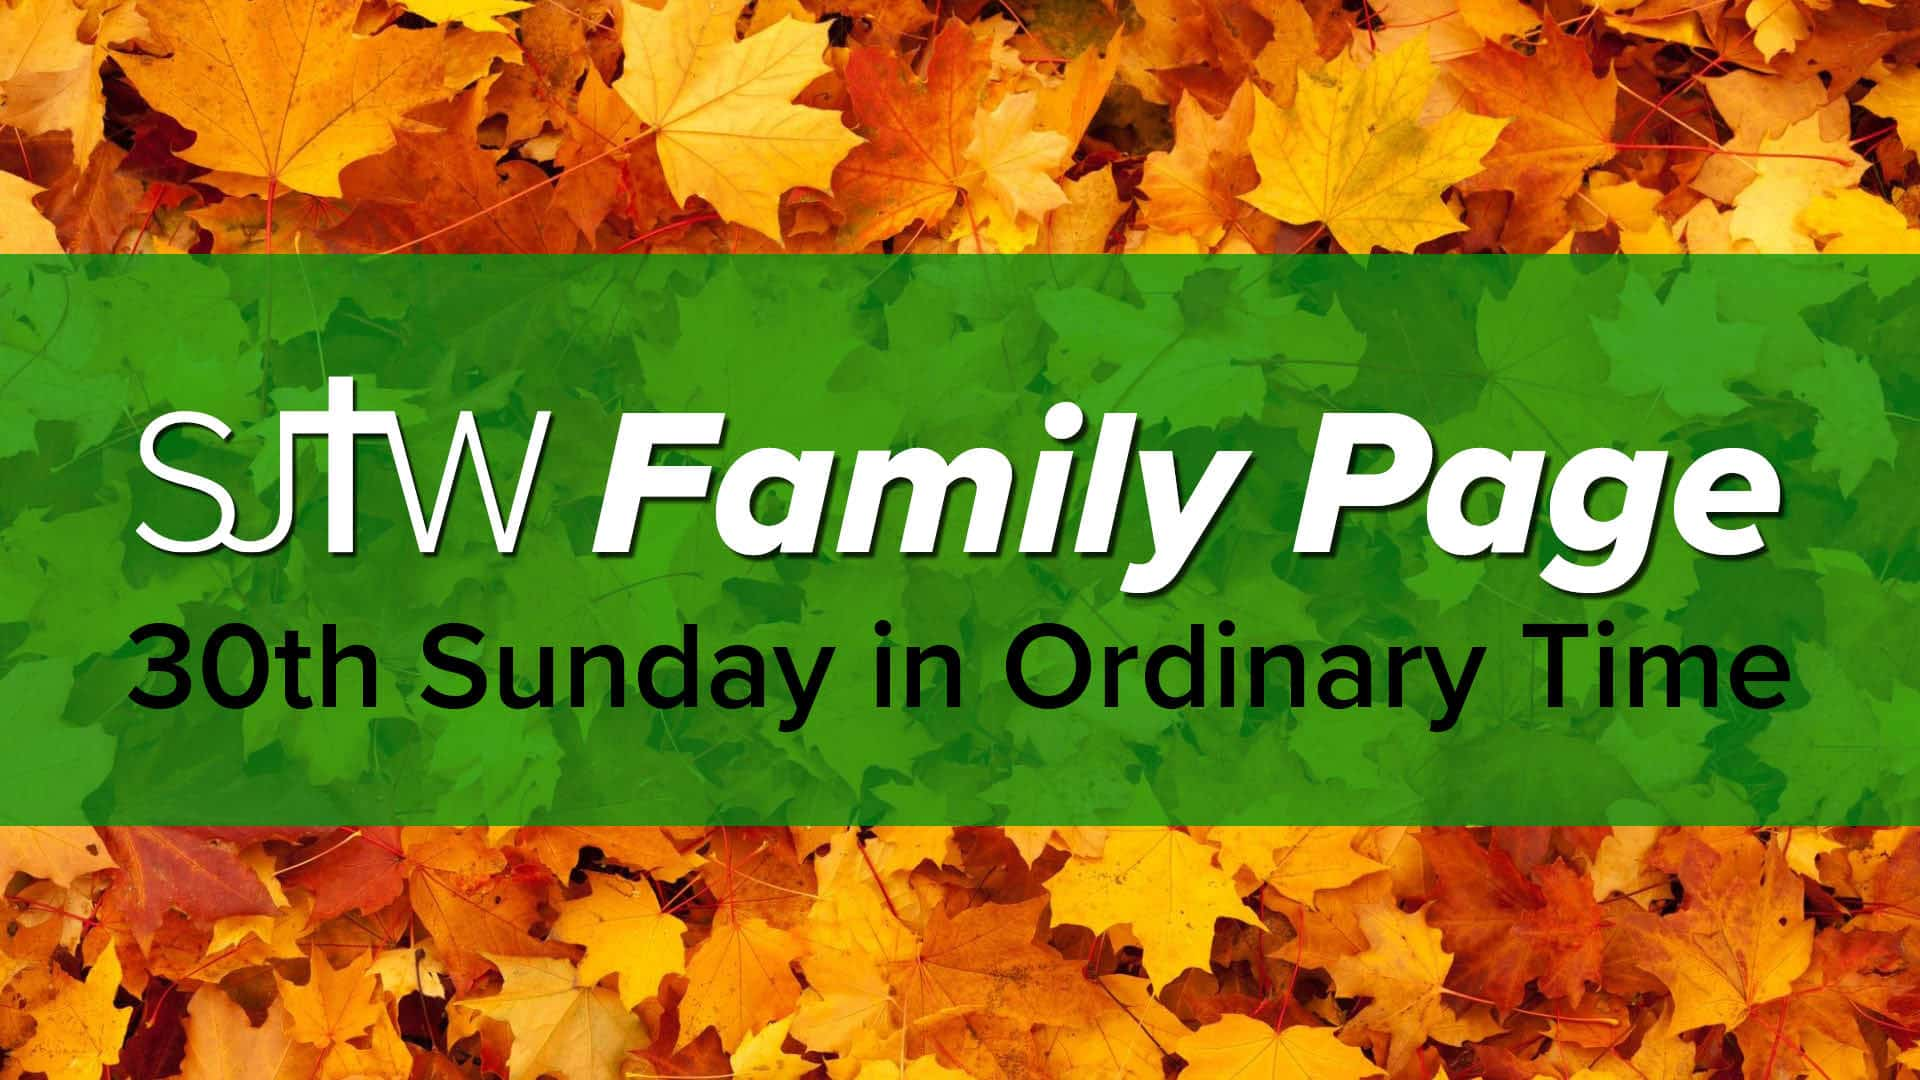 Family Page - 30th Sunday in Ordinary Time